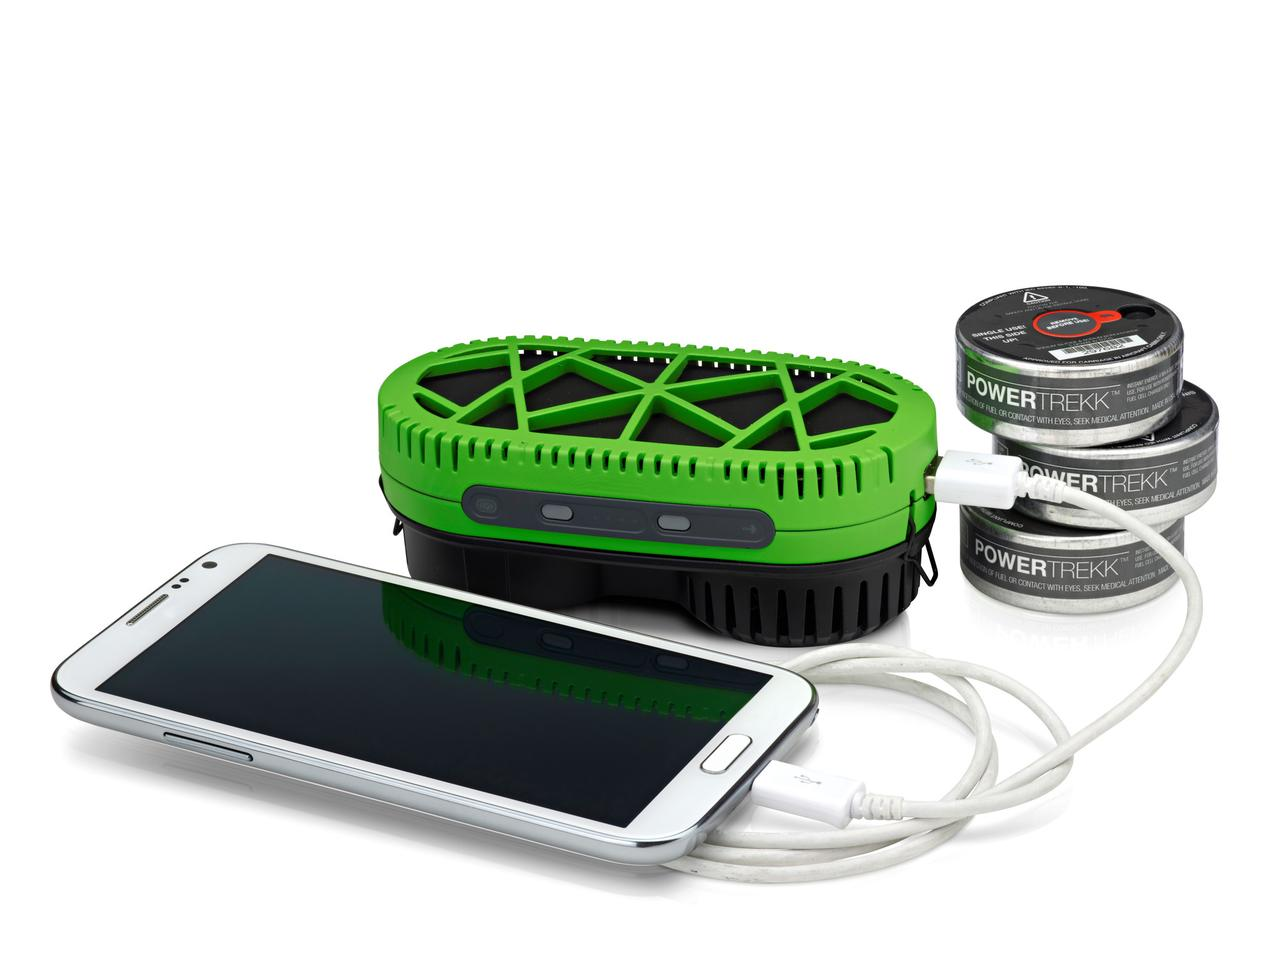 myFC introduces the second-generation PowerTrekk portable fuel cell charger